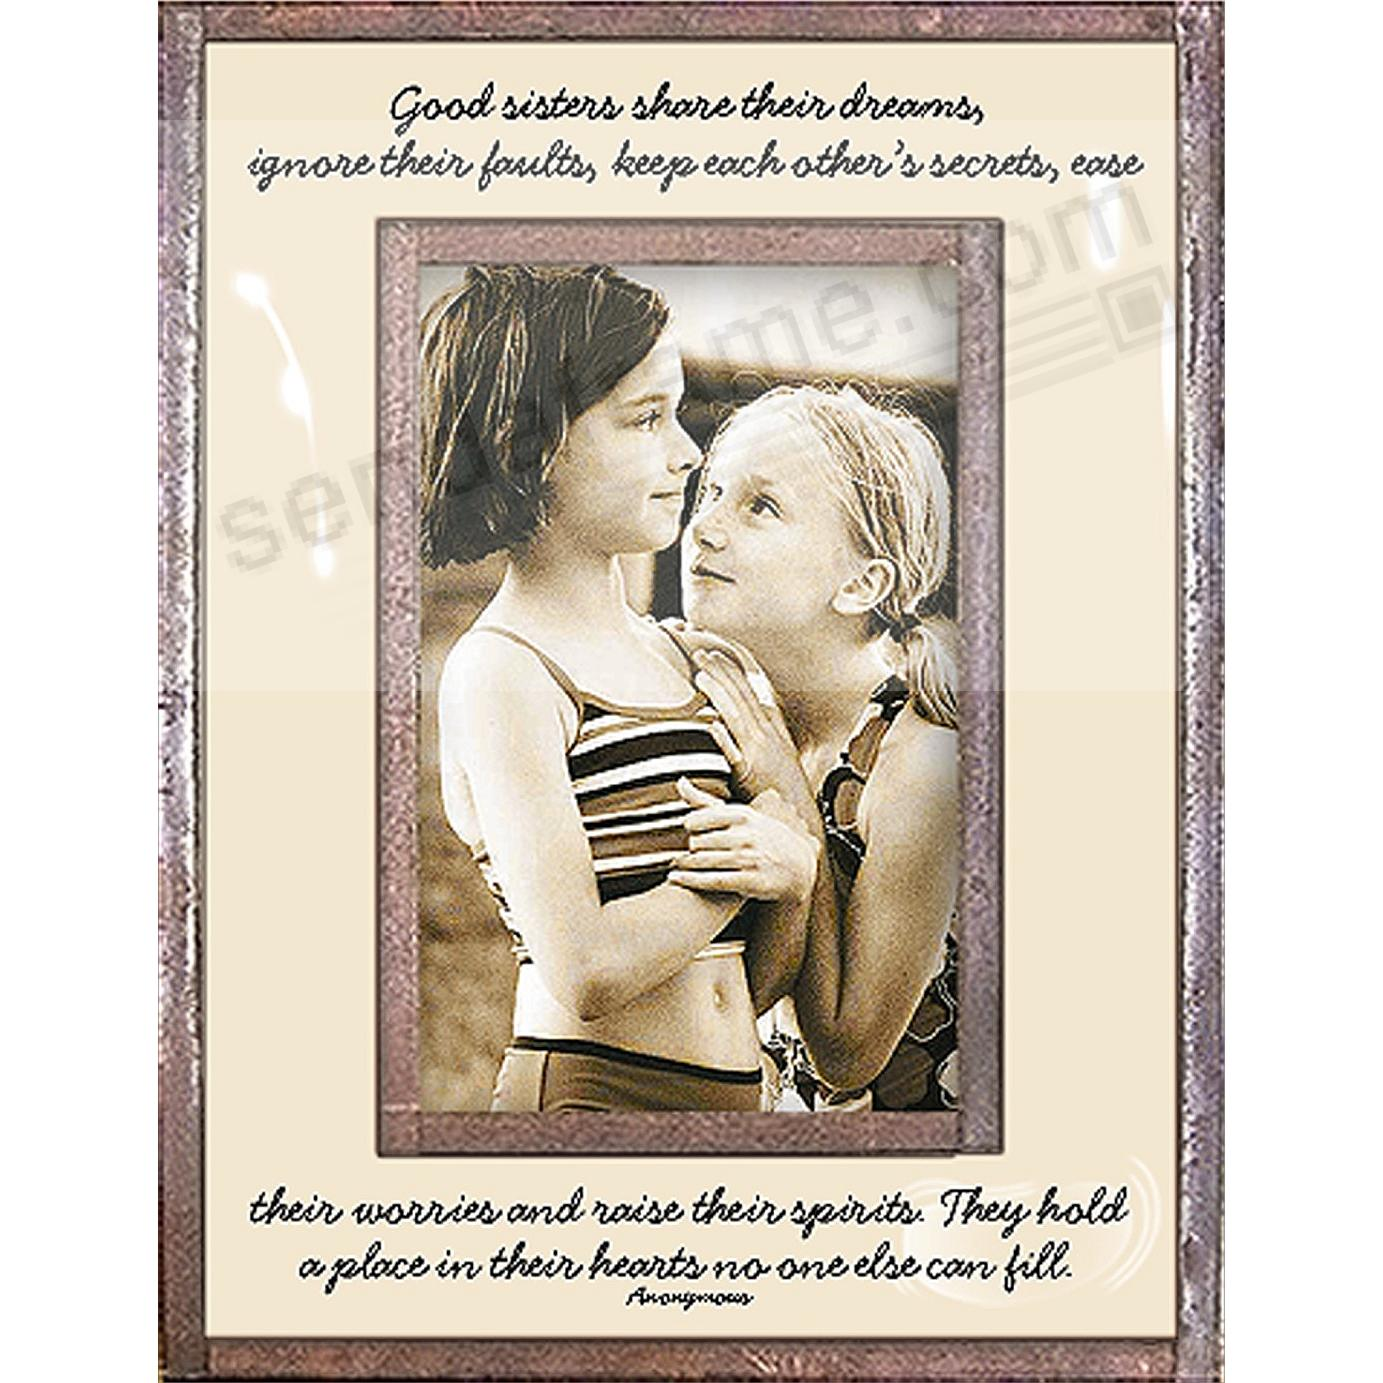 SISTERS SHARE THEIR DREAMS... Copper + Clear Glass by Ben's Garden®